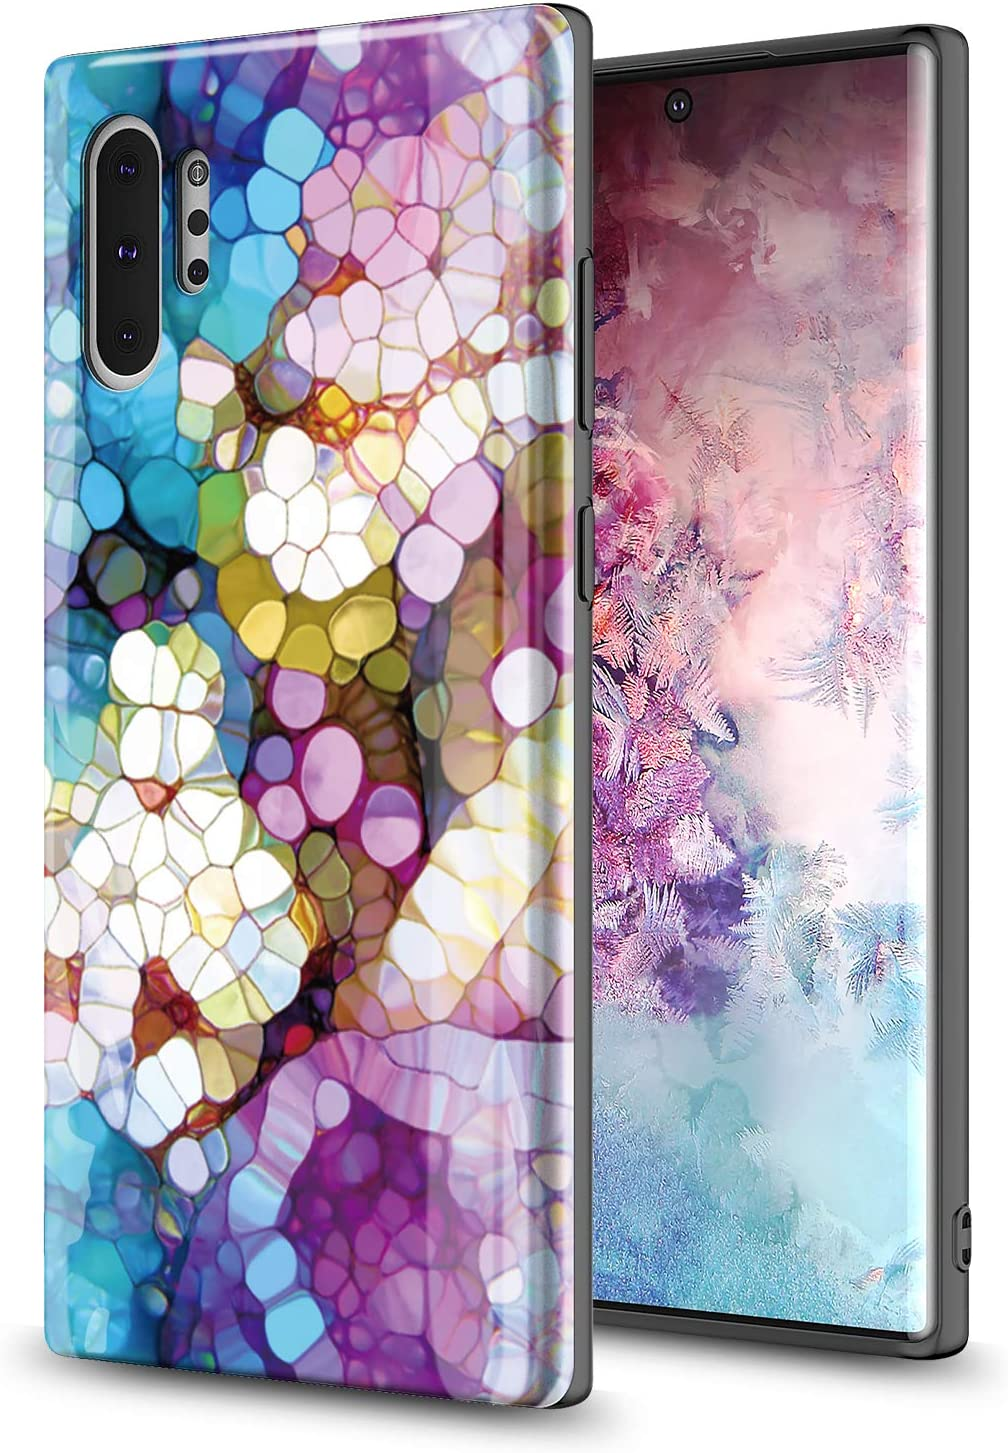 GORGCASE Case Design for Samsung Galaxy Note 10+ Plus/Note 10 Plus 5G, Slim Fashion Anti-Scratch Shook-Proof PC TPU Armor Cute Teen Girls Women Drop Protective Cover Colorful Marble